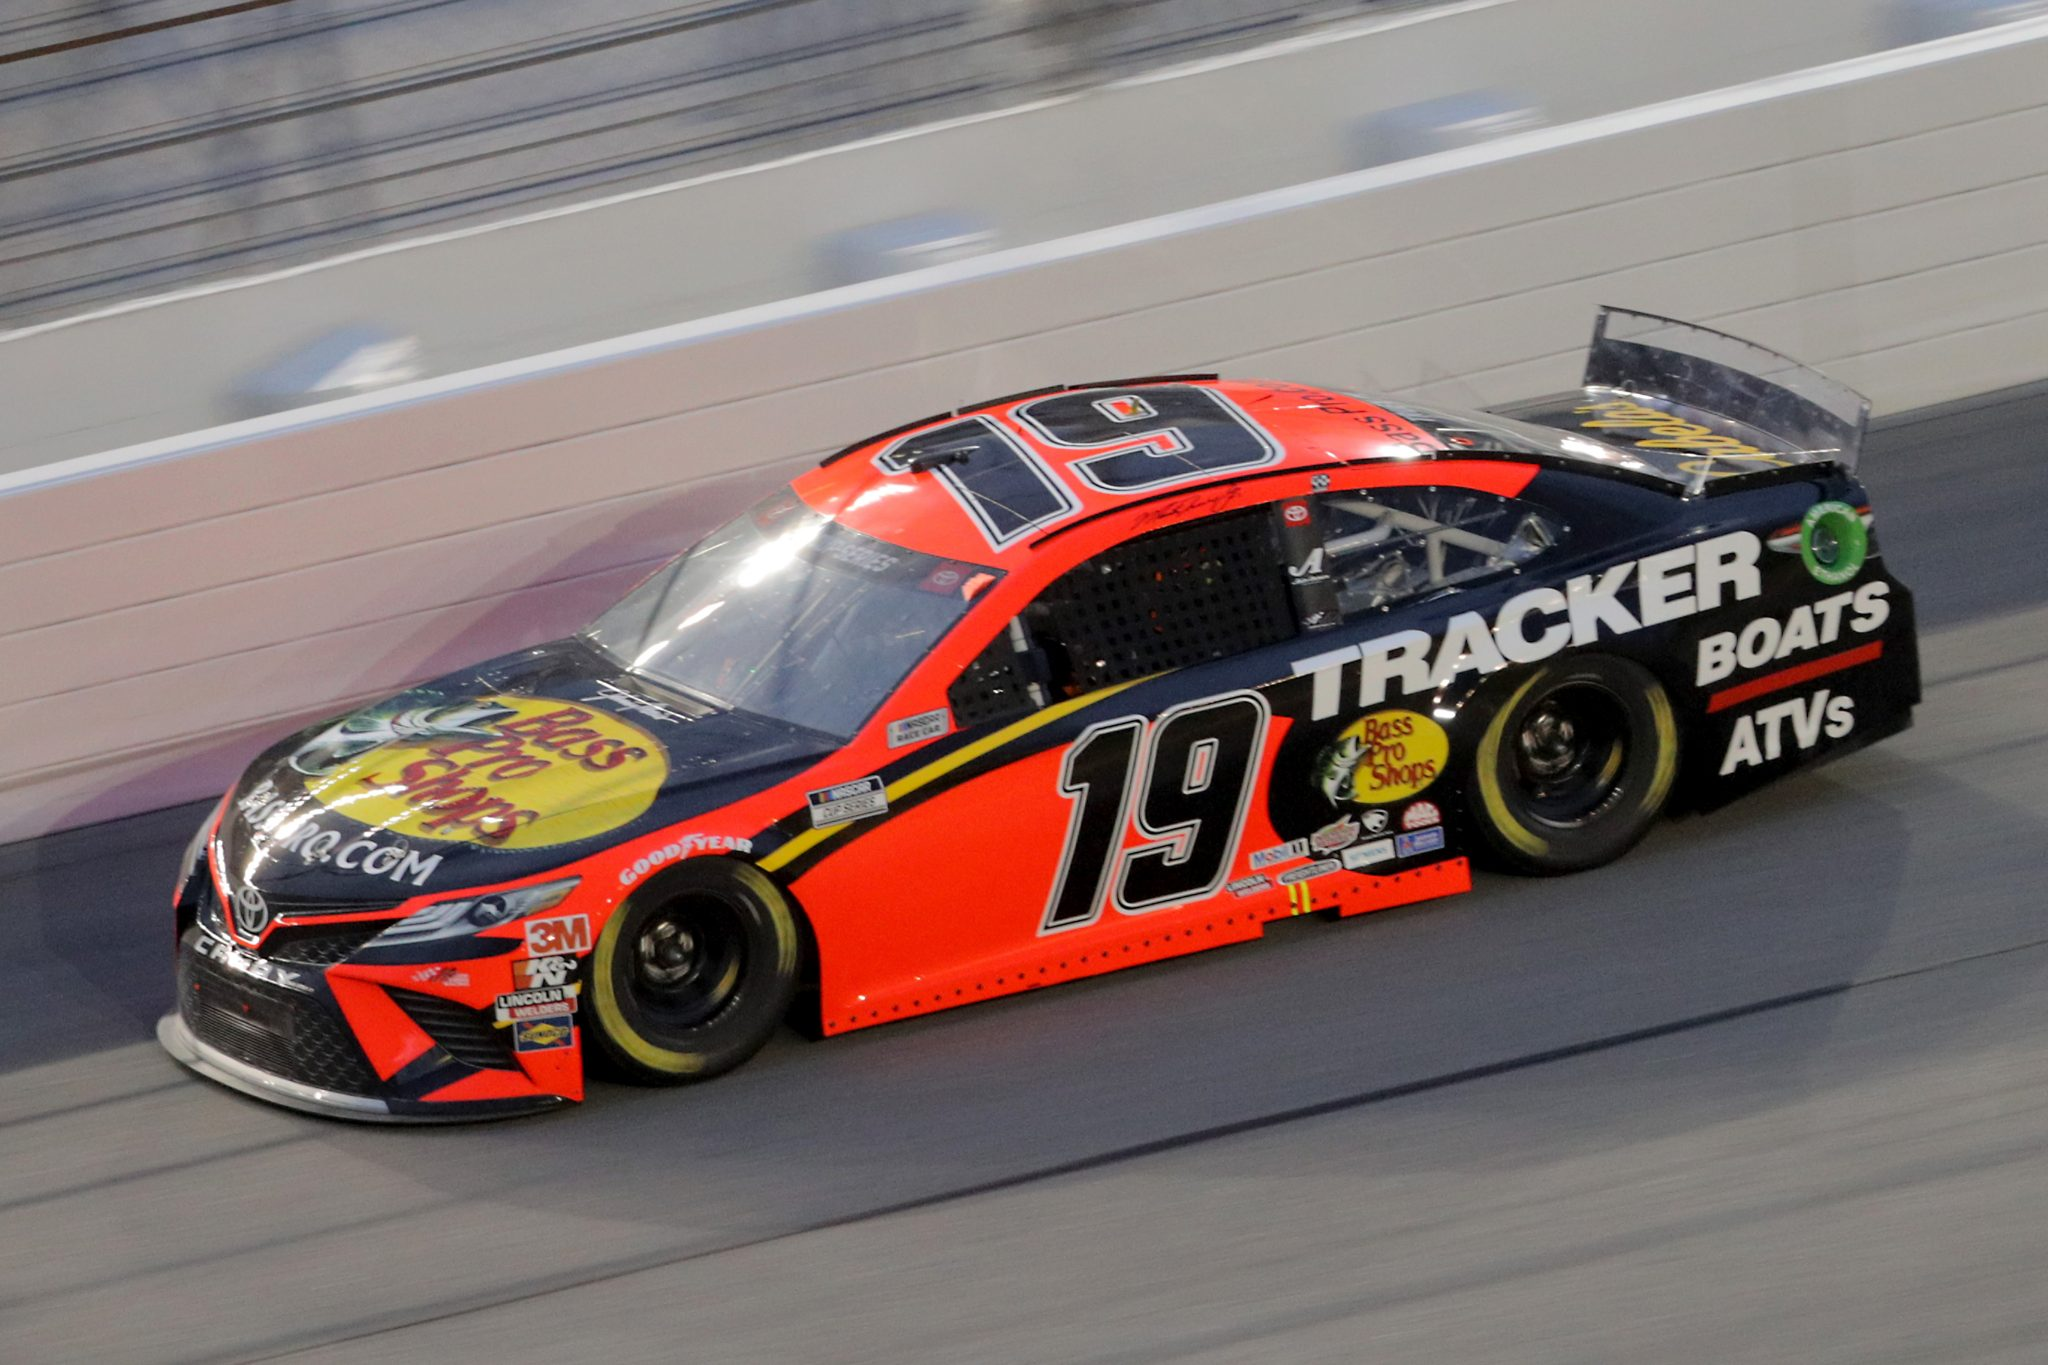 DAYTONA BEACH, FLORIDA - AUGUST 29: Martin Truex Jr., driver of the #19 Bass Pro Shops Toyota, drives during the NASCAR Cup Series Coke Zero Sugar 400 at Daytona International Speedway on August 29, 2020 in Daytona Beach, Florida. (Photo by Chris Graythen/Getty Images) | Getty Images